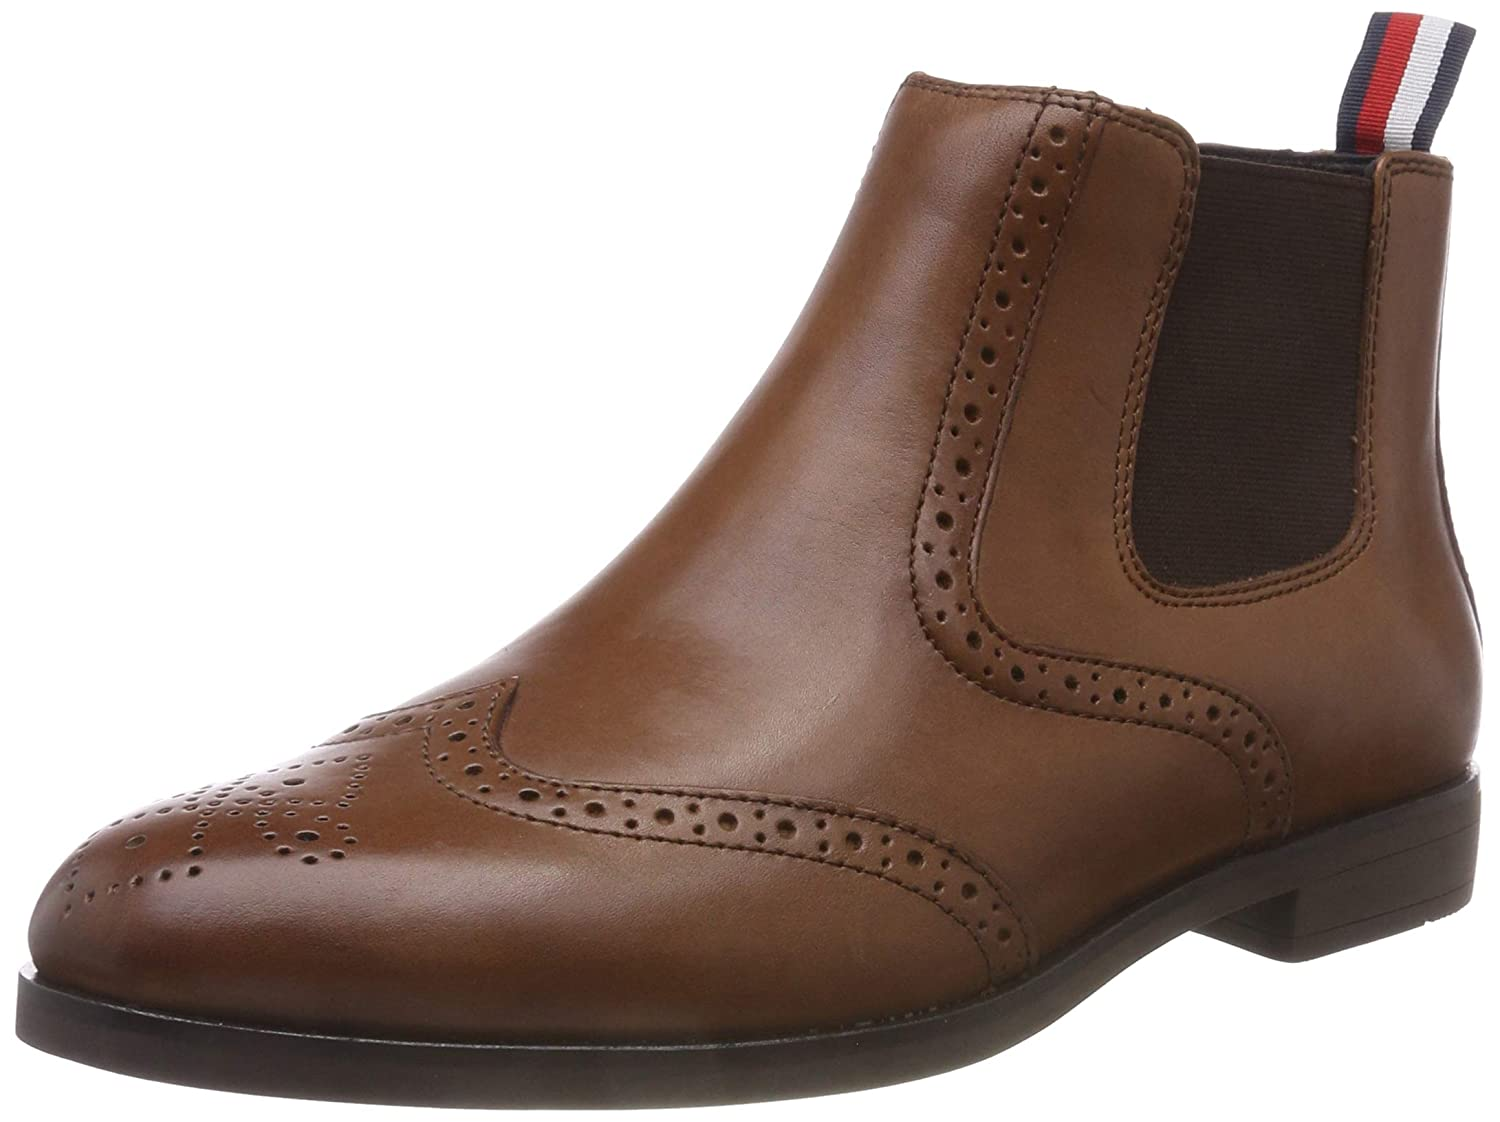 a6d62bfcece8 Tommy Hilfiger Men s Dressy Casual Leather Chelsea Boots  Amazon.co.uk   Shoes   Bags